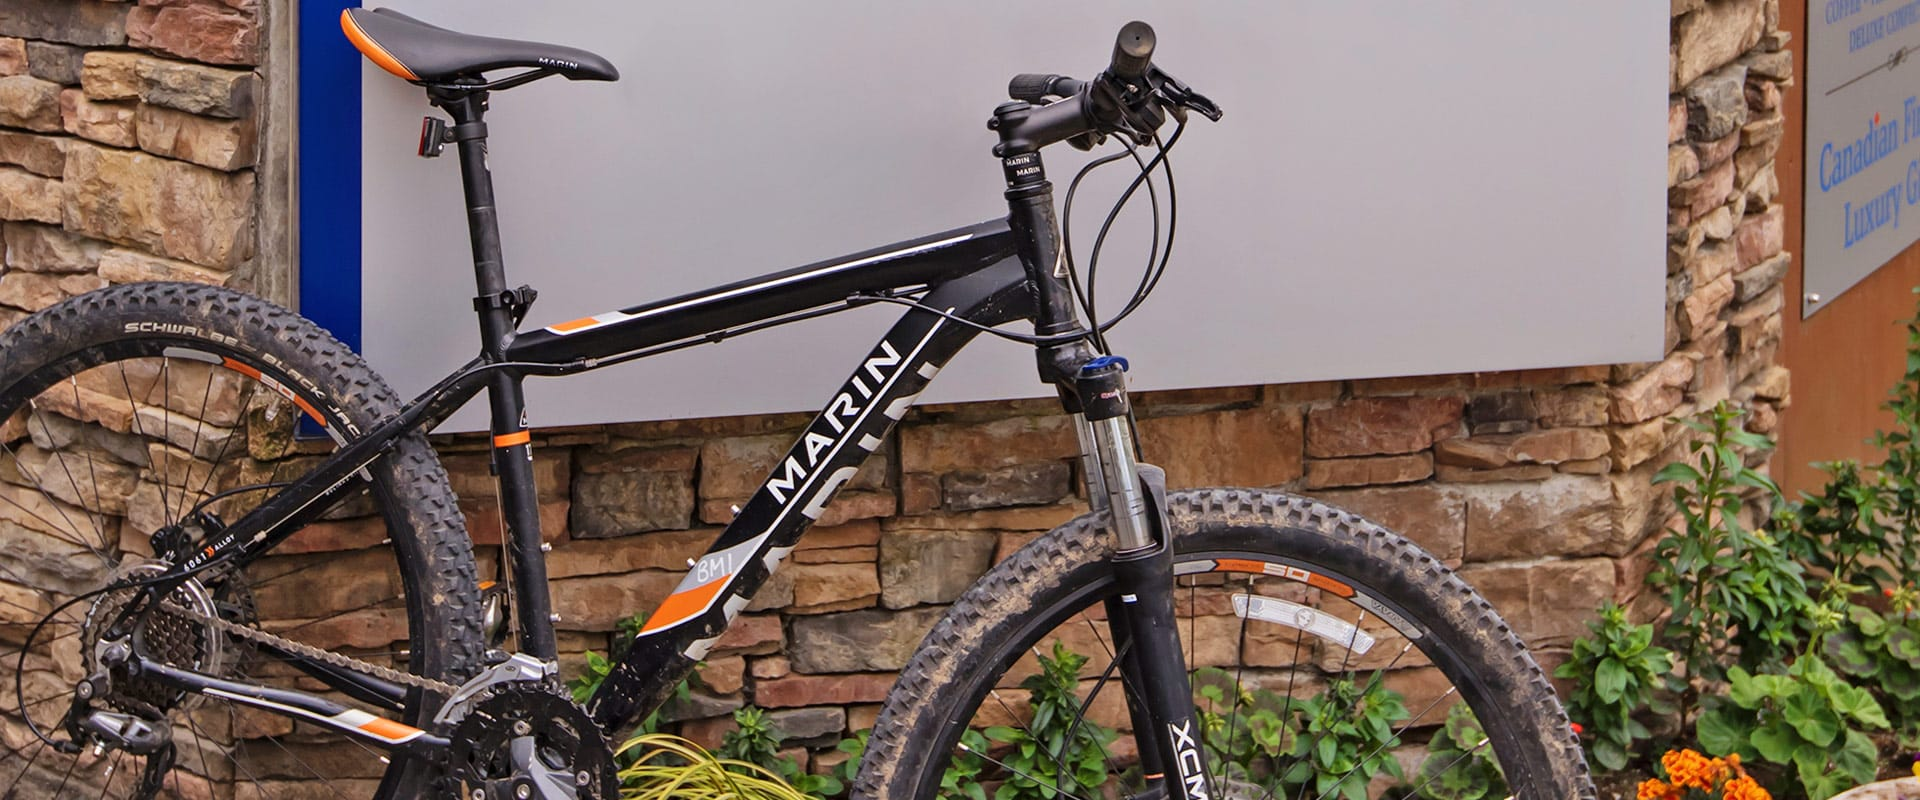 mountain-bike-rentals-banner